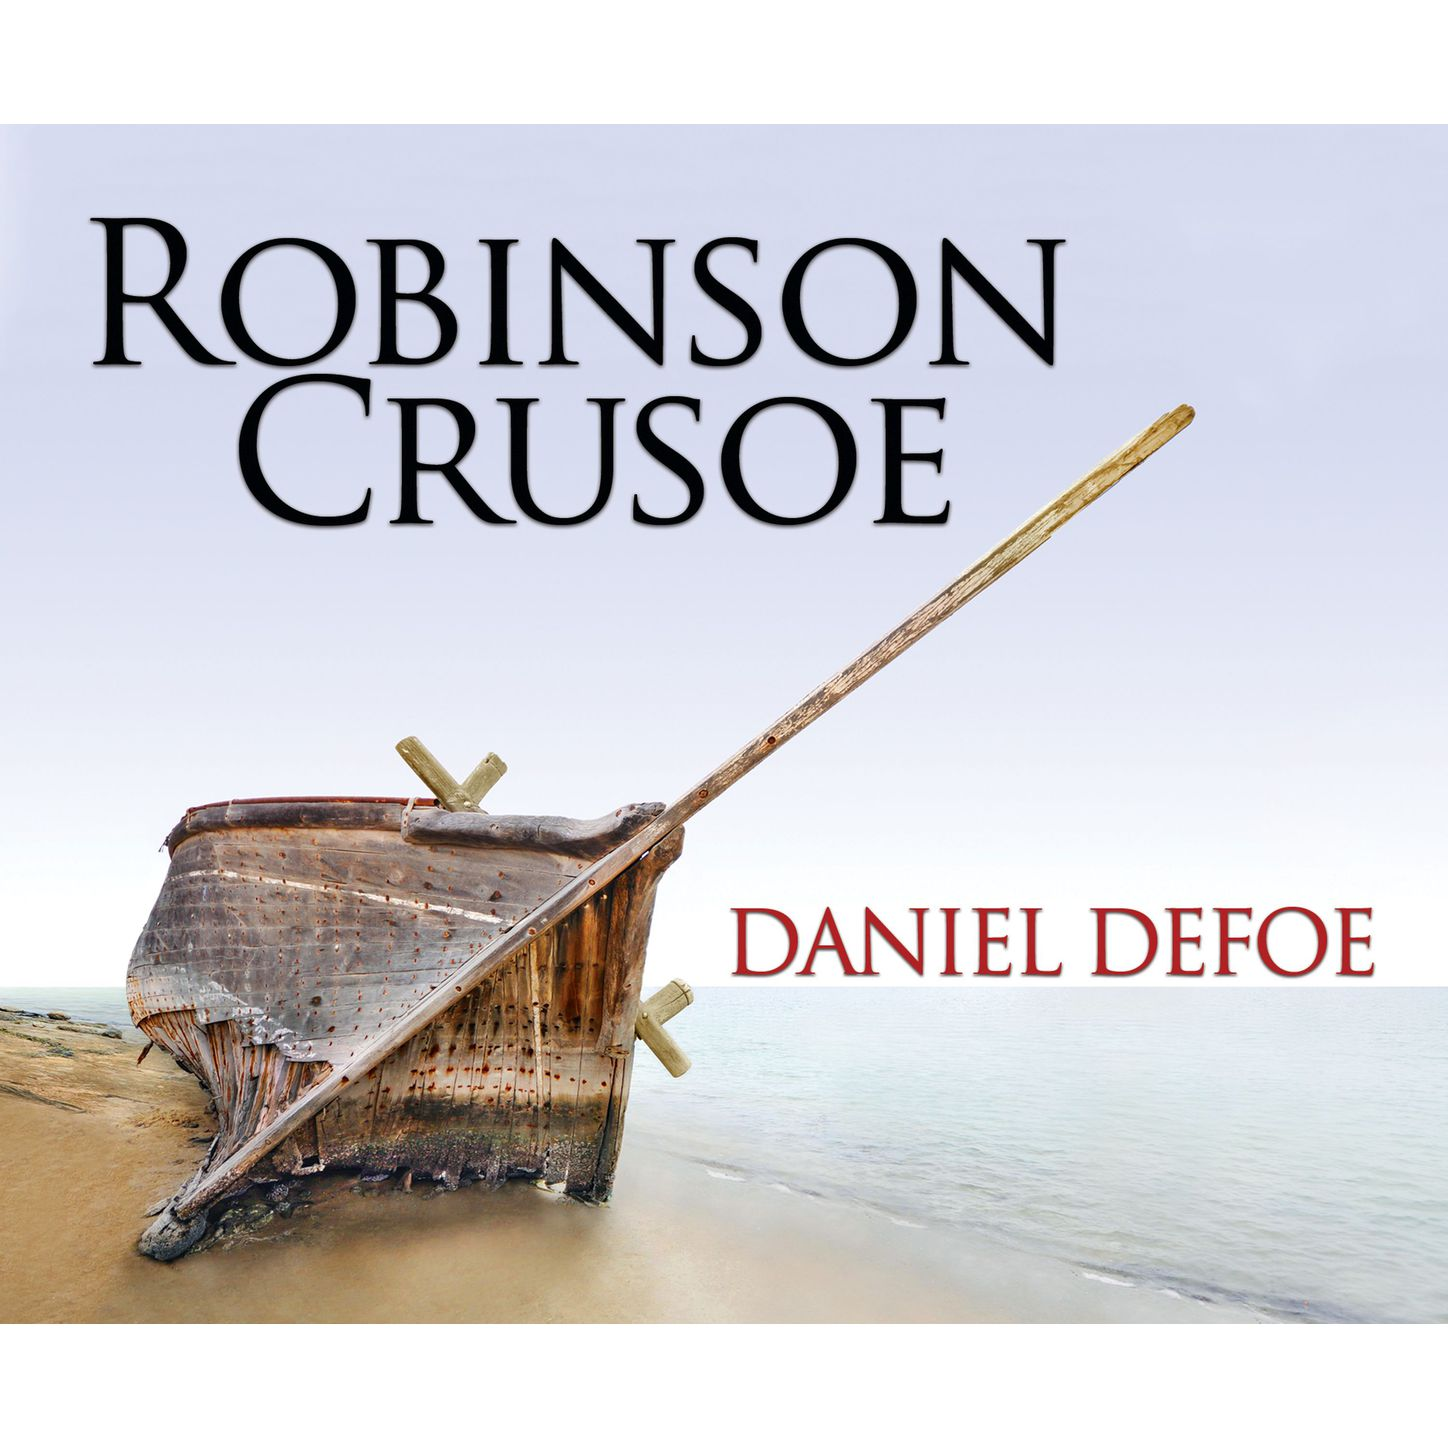 Daniel Defoe Robinson Crusoe (Unabridged) daniel defoe the life and aventures of robinson crusoe to which is prefixed a biographical memoir of daniel de foe volume 3